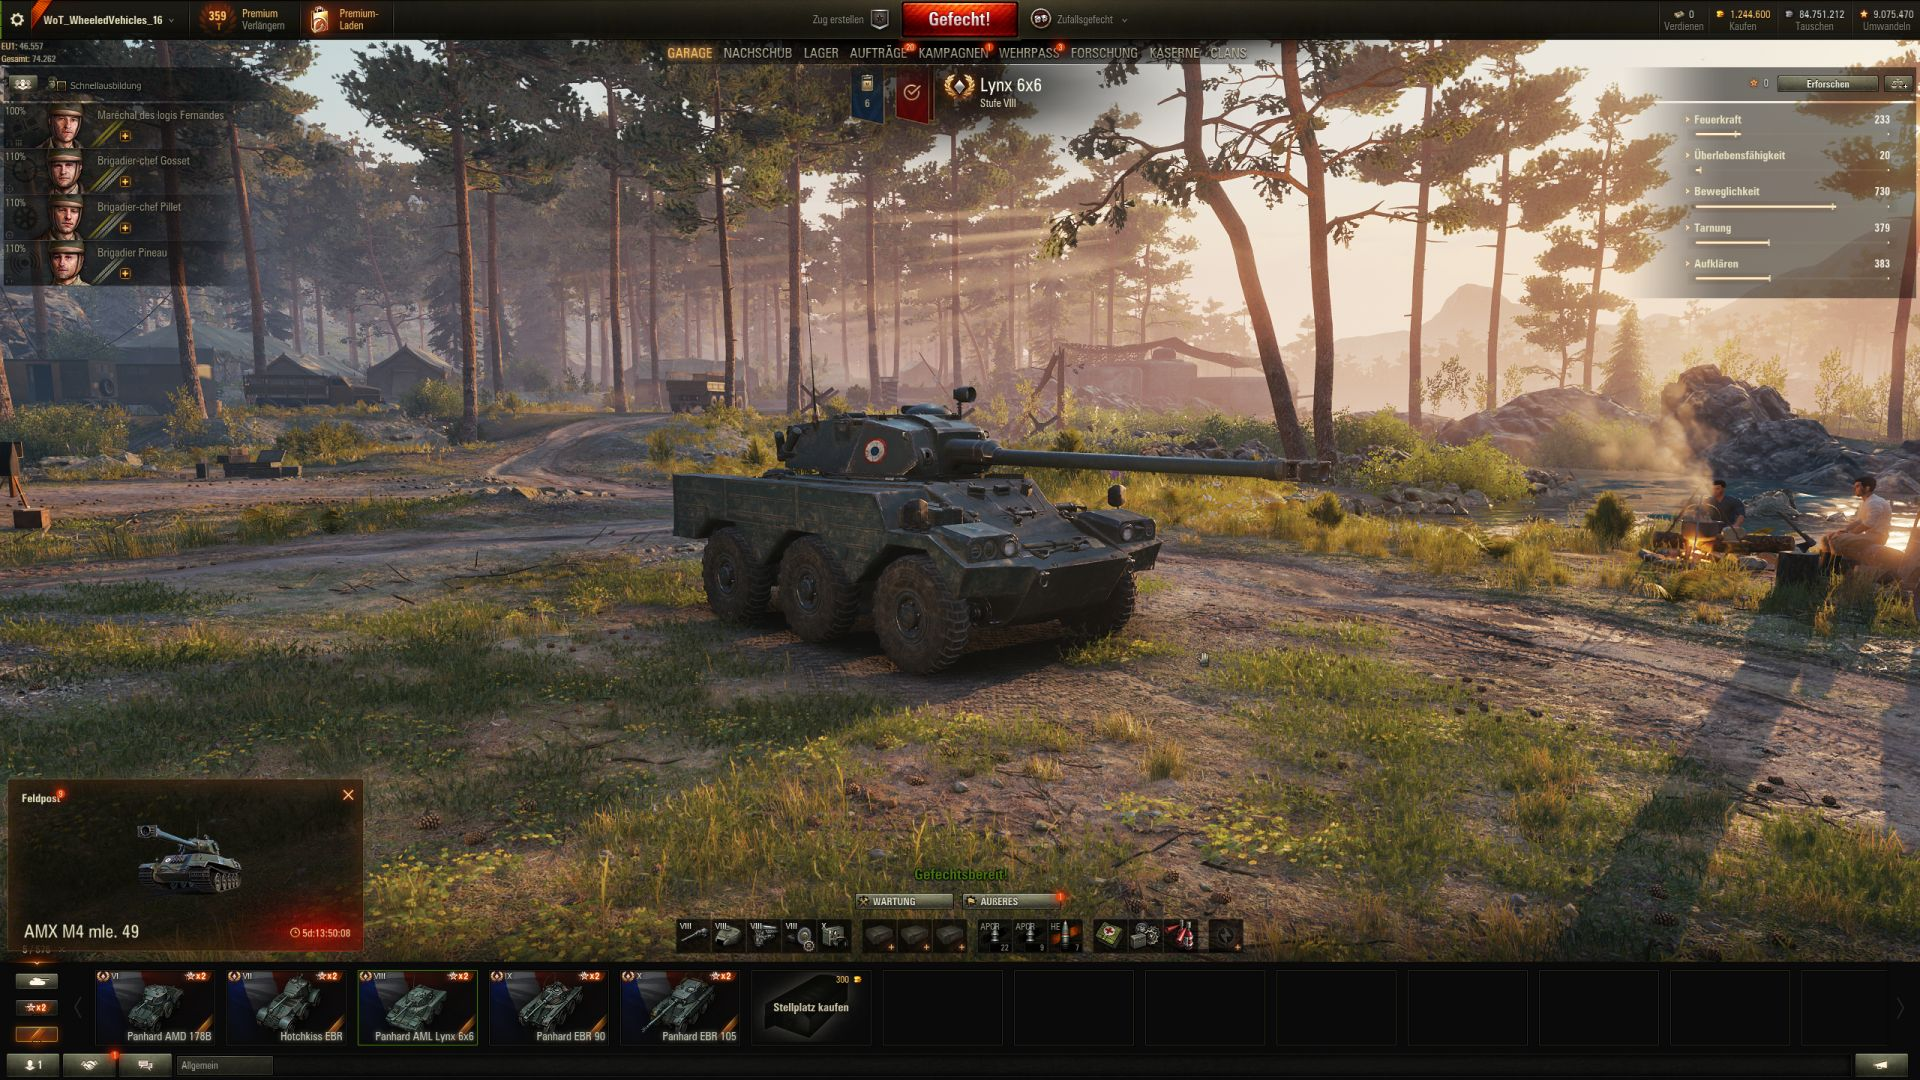 wot-radpanzer-screenshots-1-02